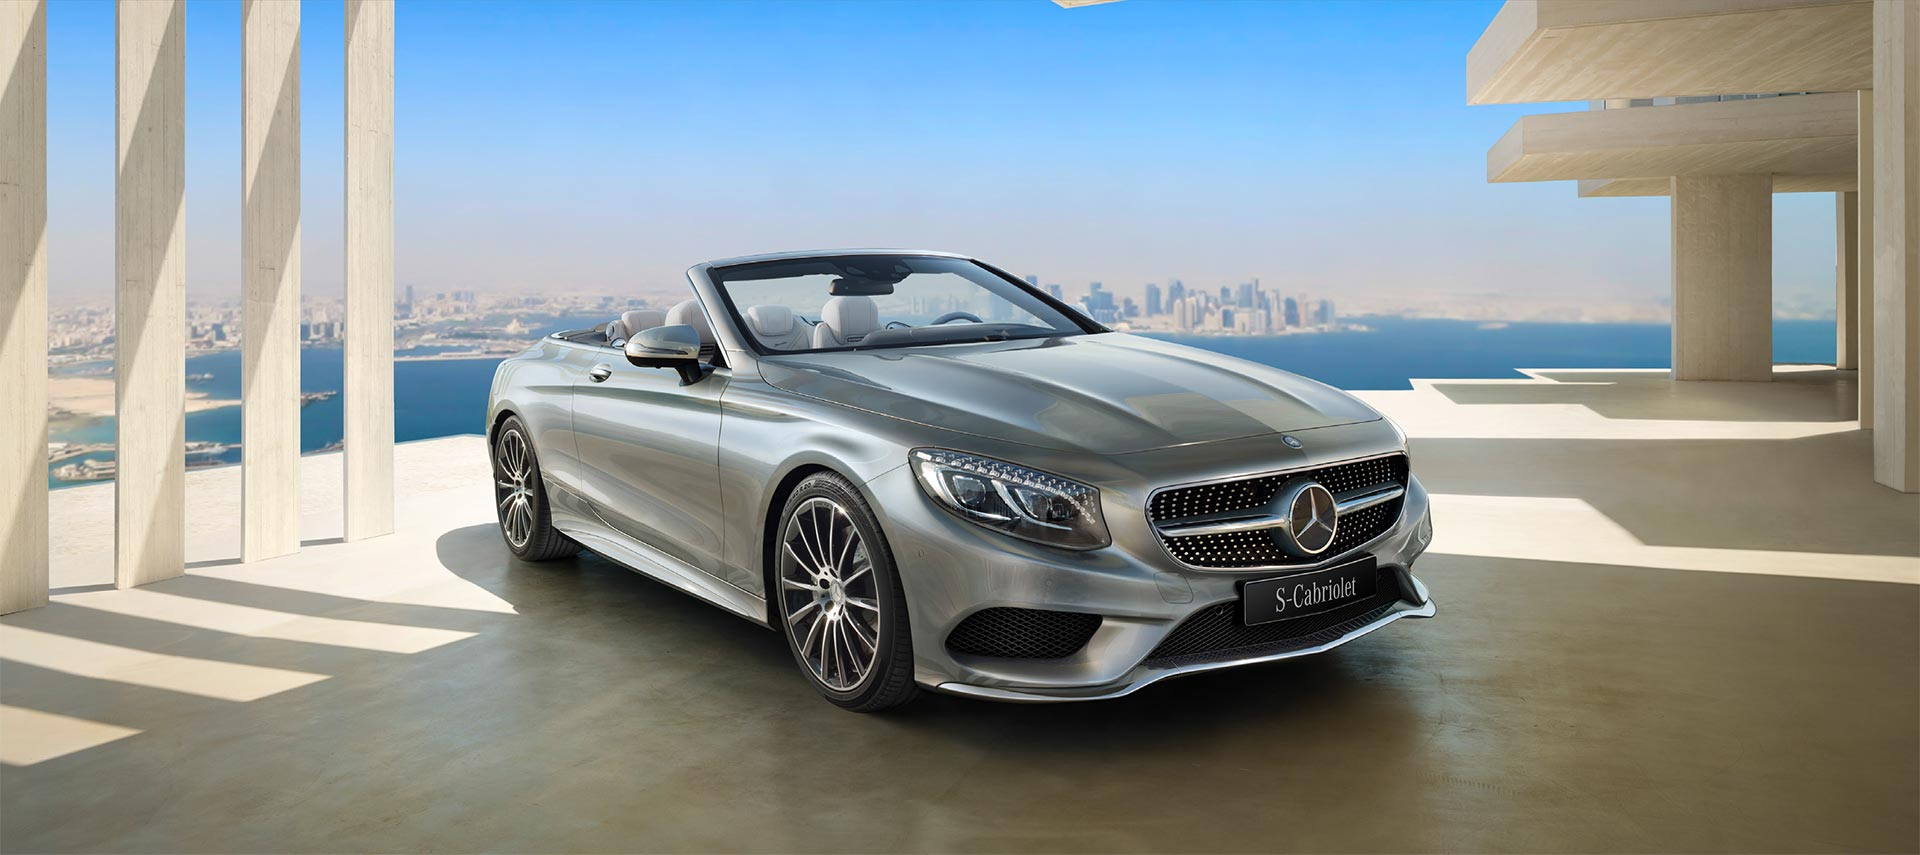 Limited time offer from Nasser Bin Khaled on the Mercedes